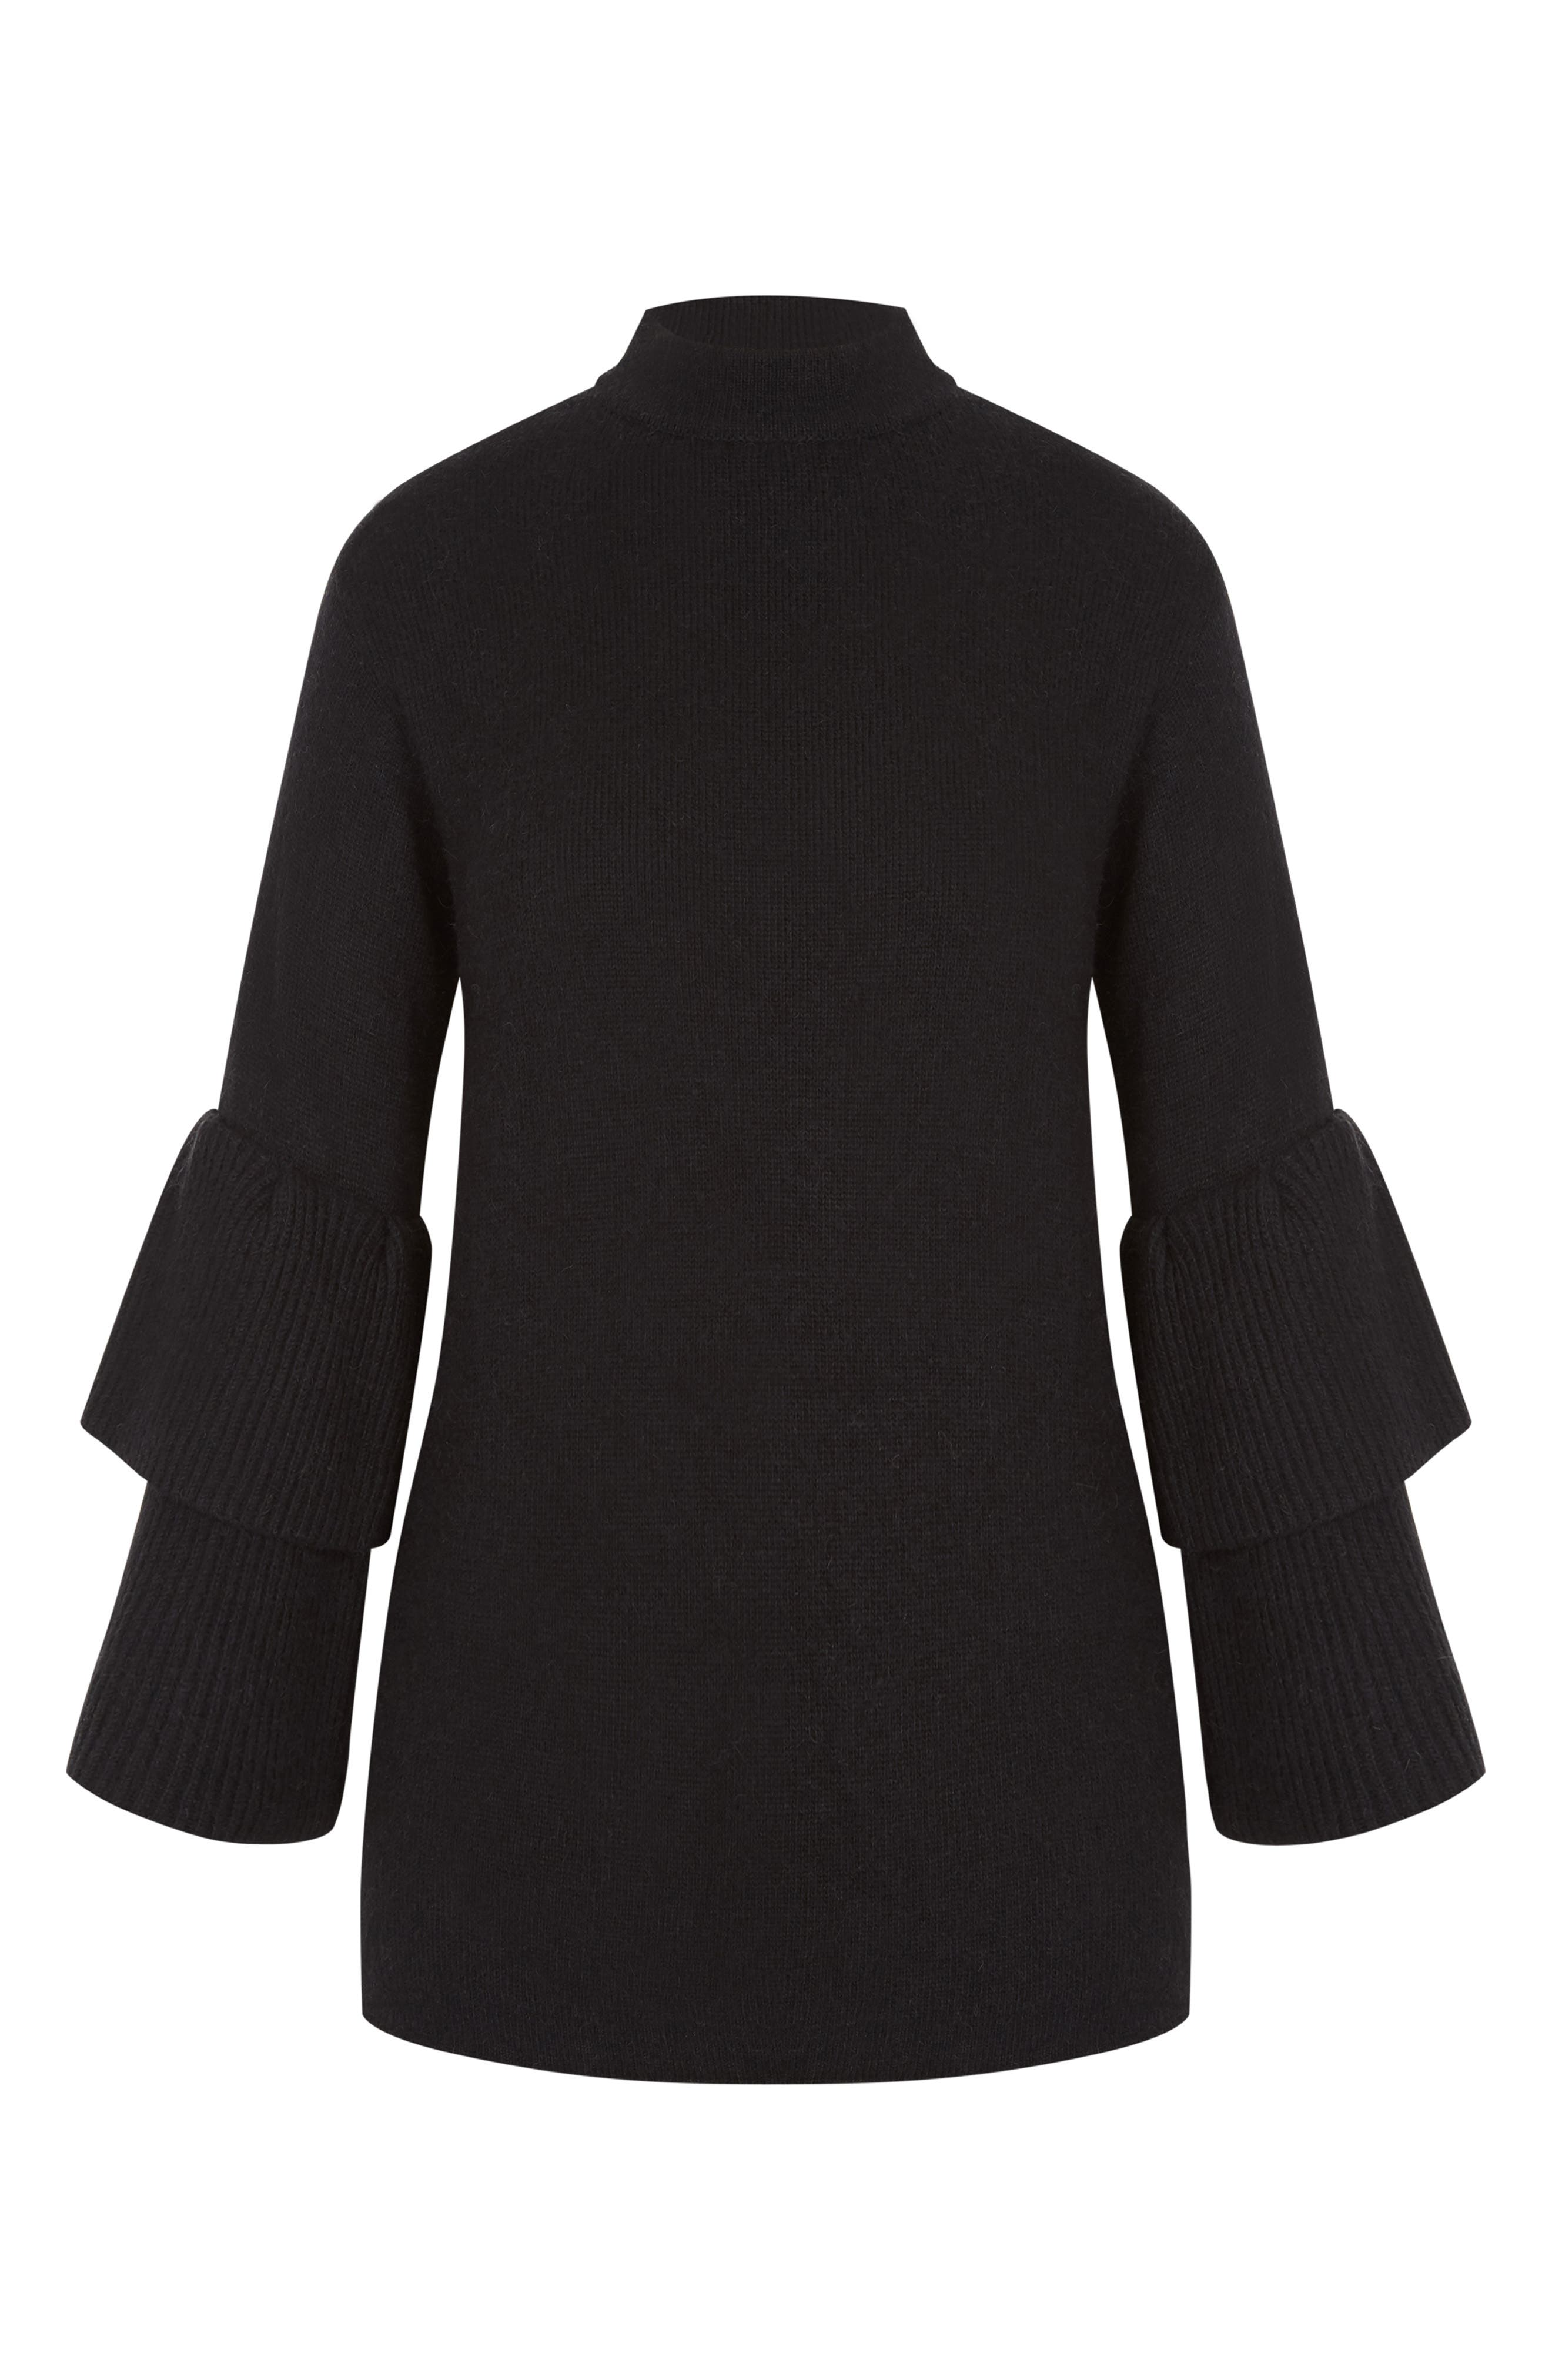 CITY CHIC, Tiered Sleeve Sweater, Alternate thumbnail 3, color, BLACK